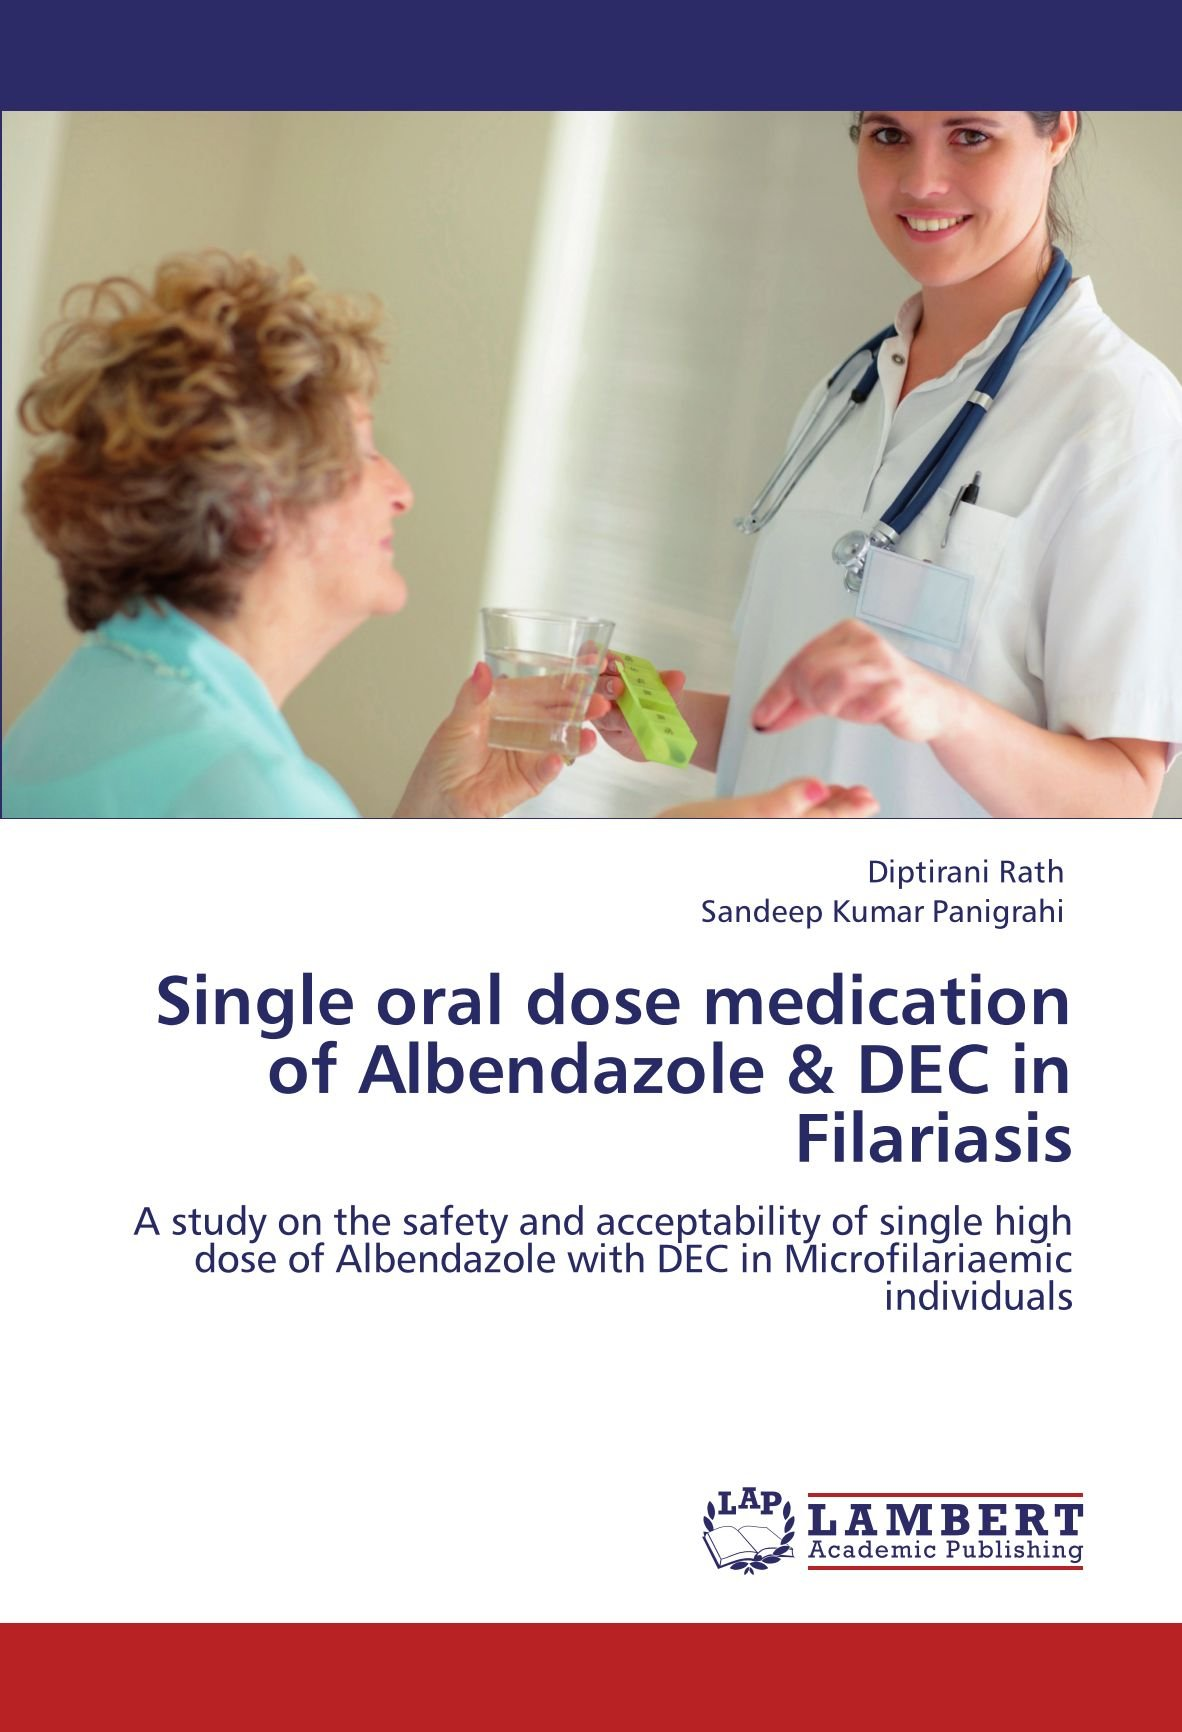 Download Single oral dose medication of Albendazole & DEC in Filariasis: A study on the safety and acceptability of single high dose of Albendazole with DEC in Microfilariaemic individuals ebook